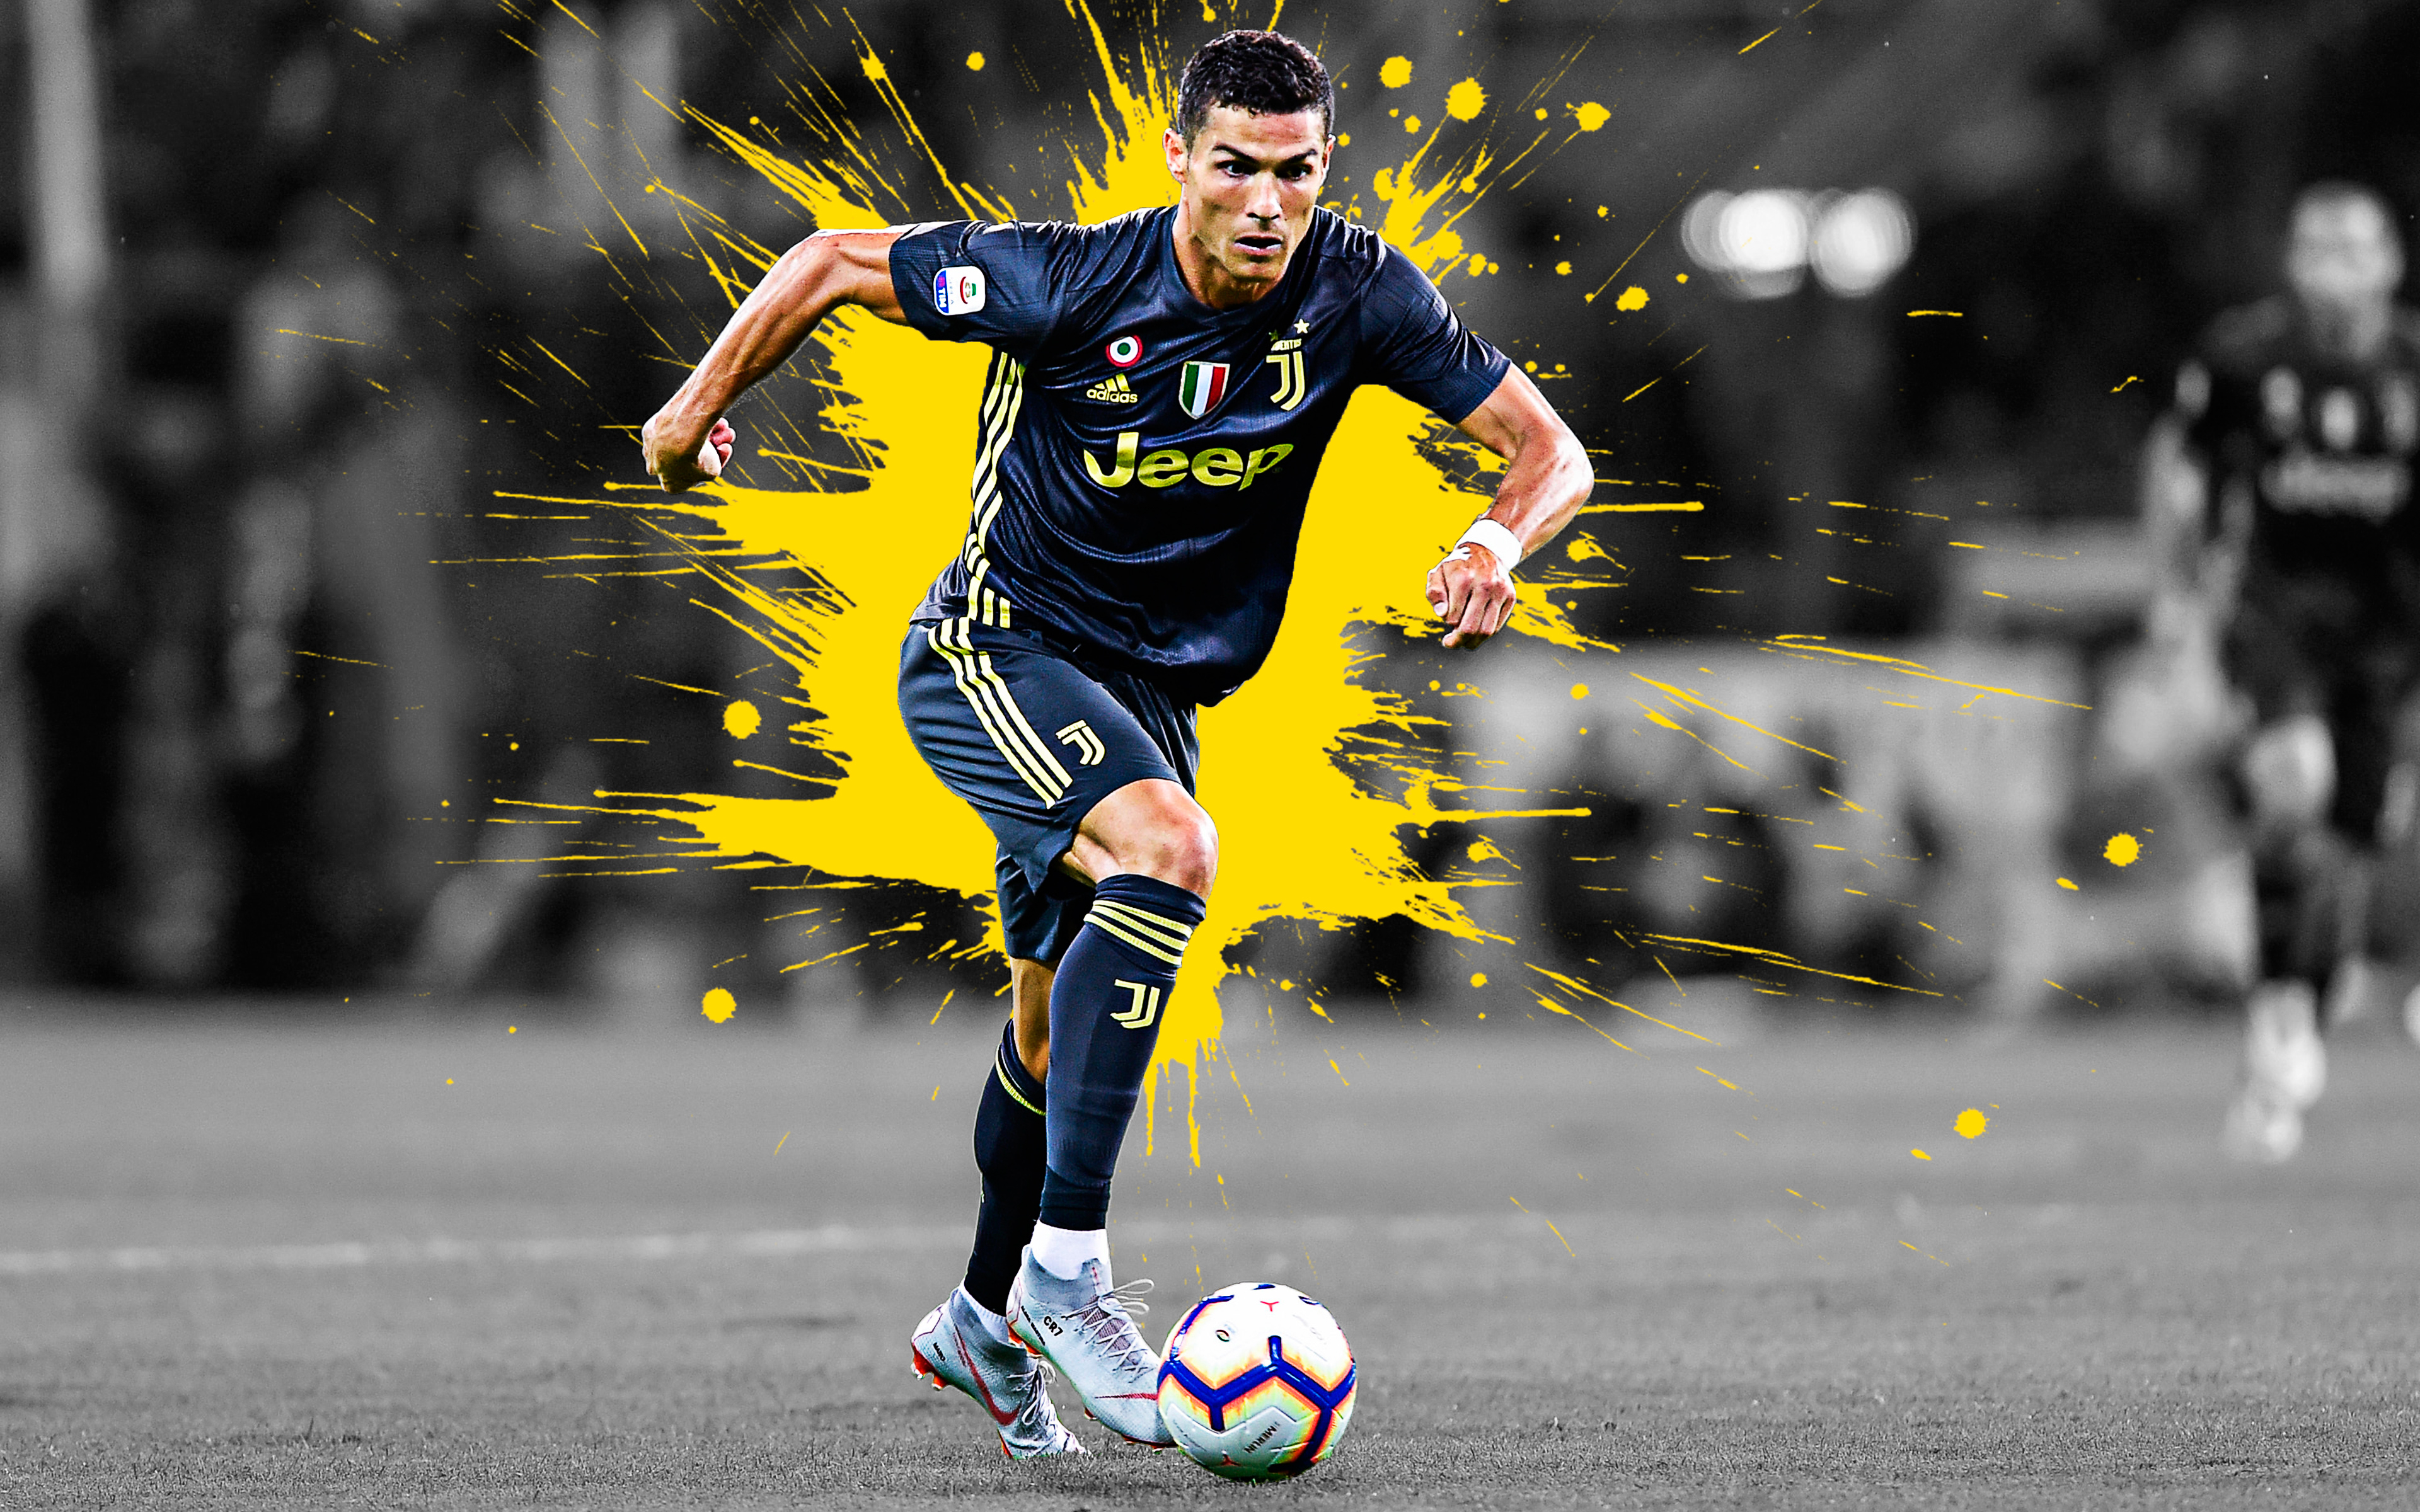 Cristiano Ronaldo Juventus 4k Ultra Hd Wallpaper Background Image 3840x2400 Id 961847 Wallpaper Abyss